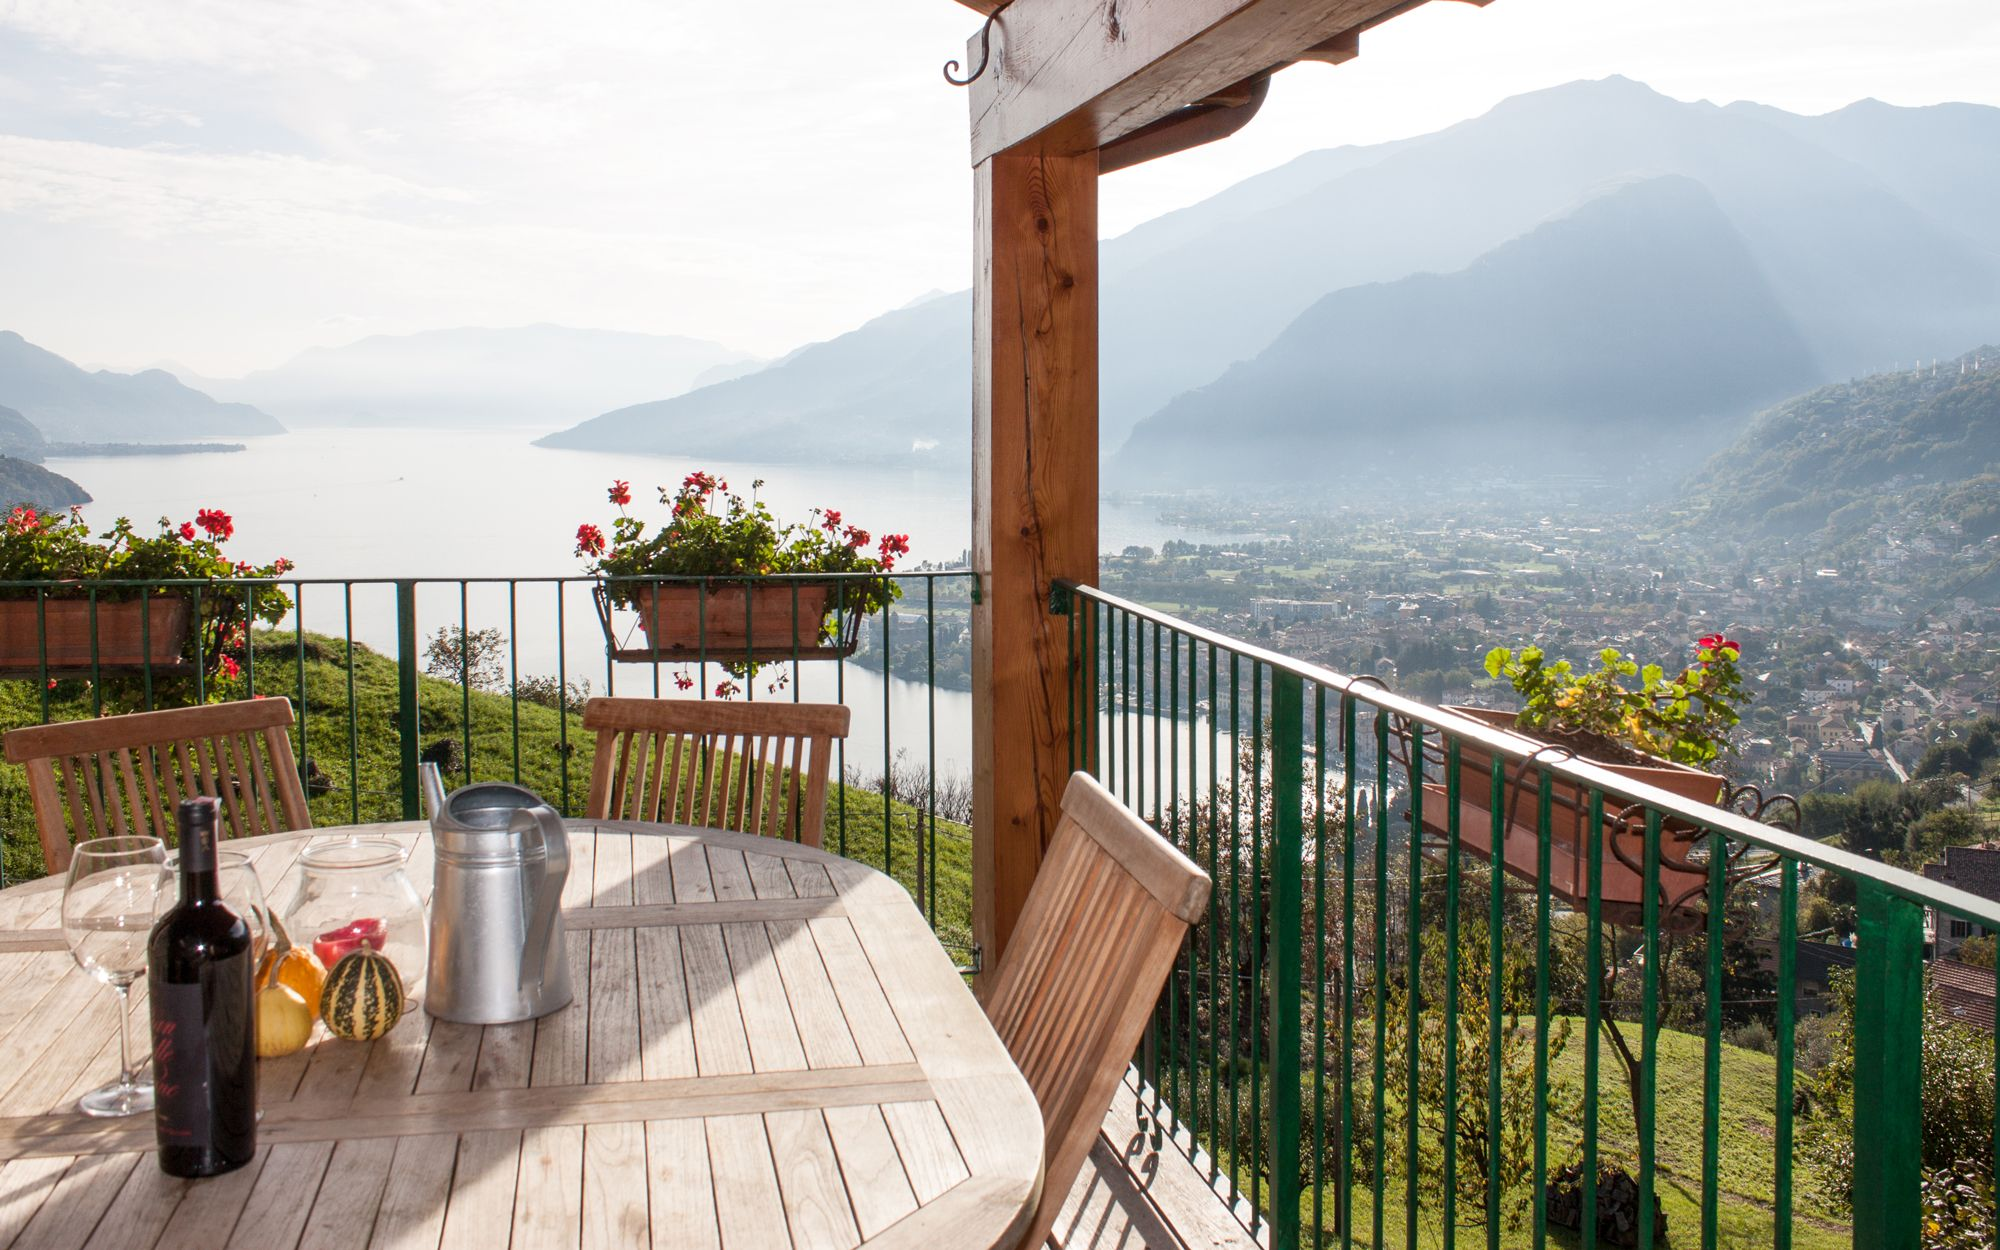 10 Airbnb Rentals with Jaw-Dropping Views http://www.actuweek.com/go/hotel/hotelscombined.php